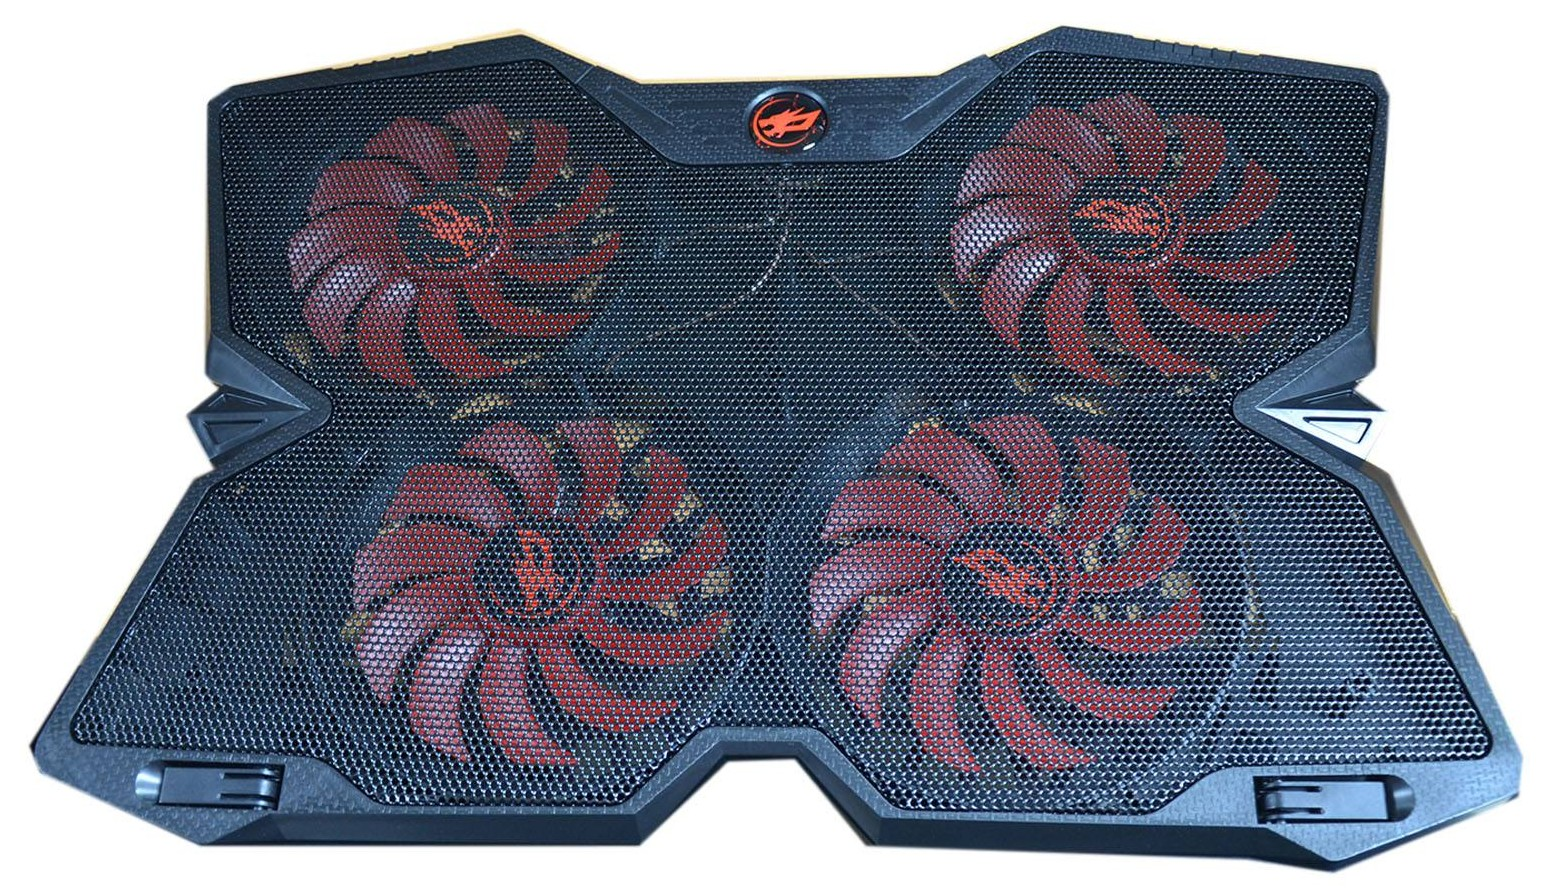 Cooling Pad Gaming Warwolf Crimson/coolingpad Gaming/cooler Gaming